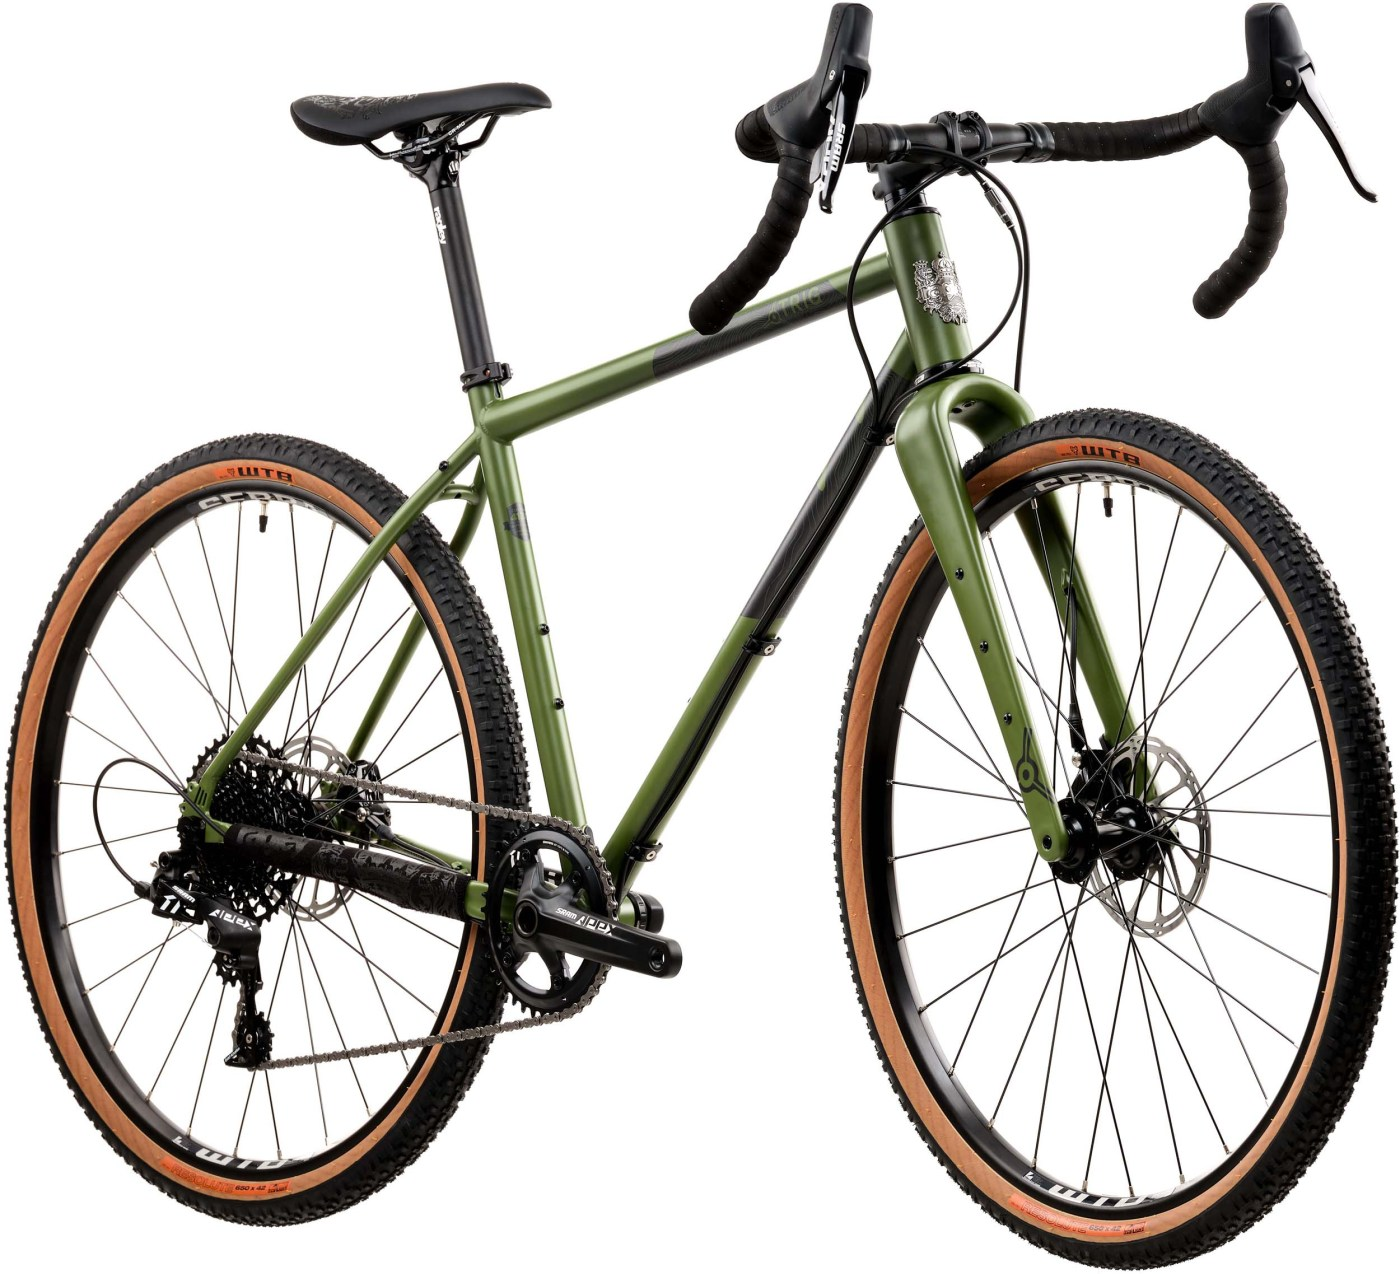 Ragley Adds a Gravel Bike to Its Lineup, the Trig 3